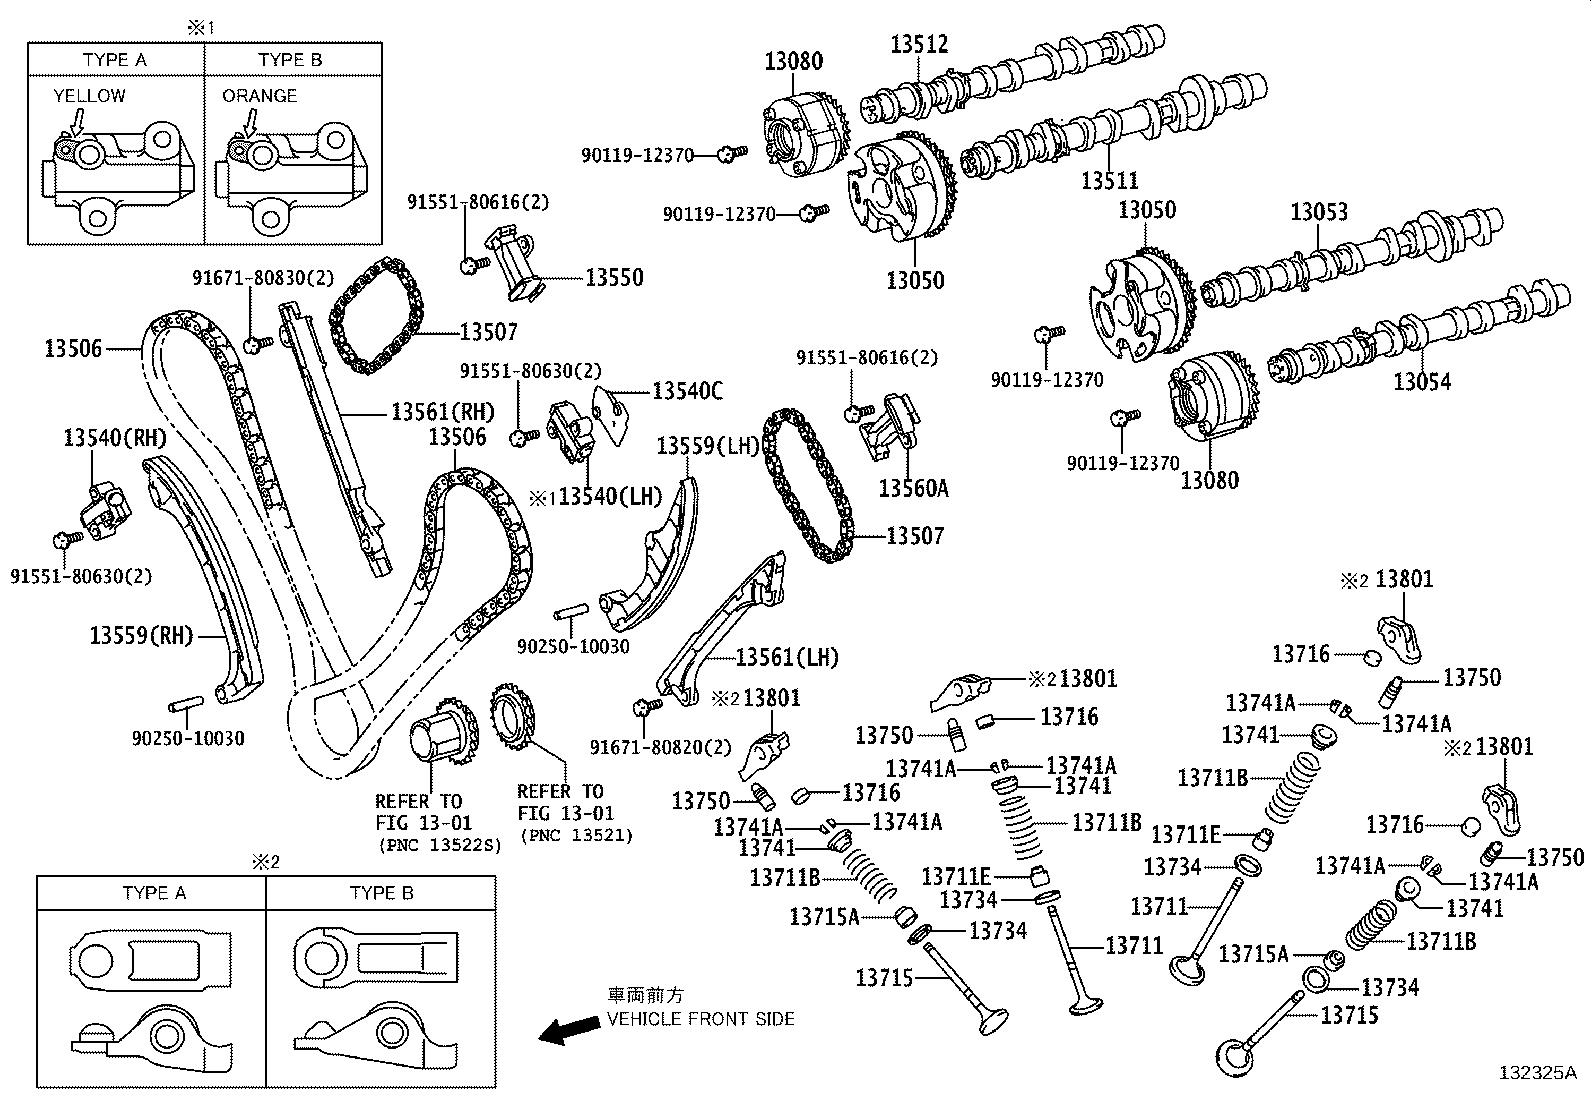 1994 Toyota Land Cruiser Engine Diagram | Wiring Diagram Database